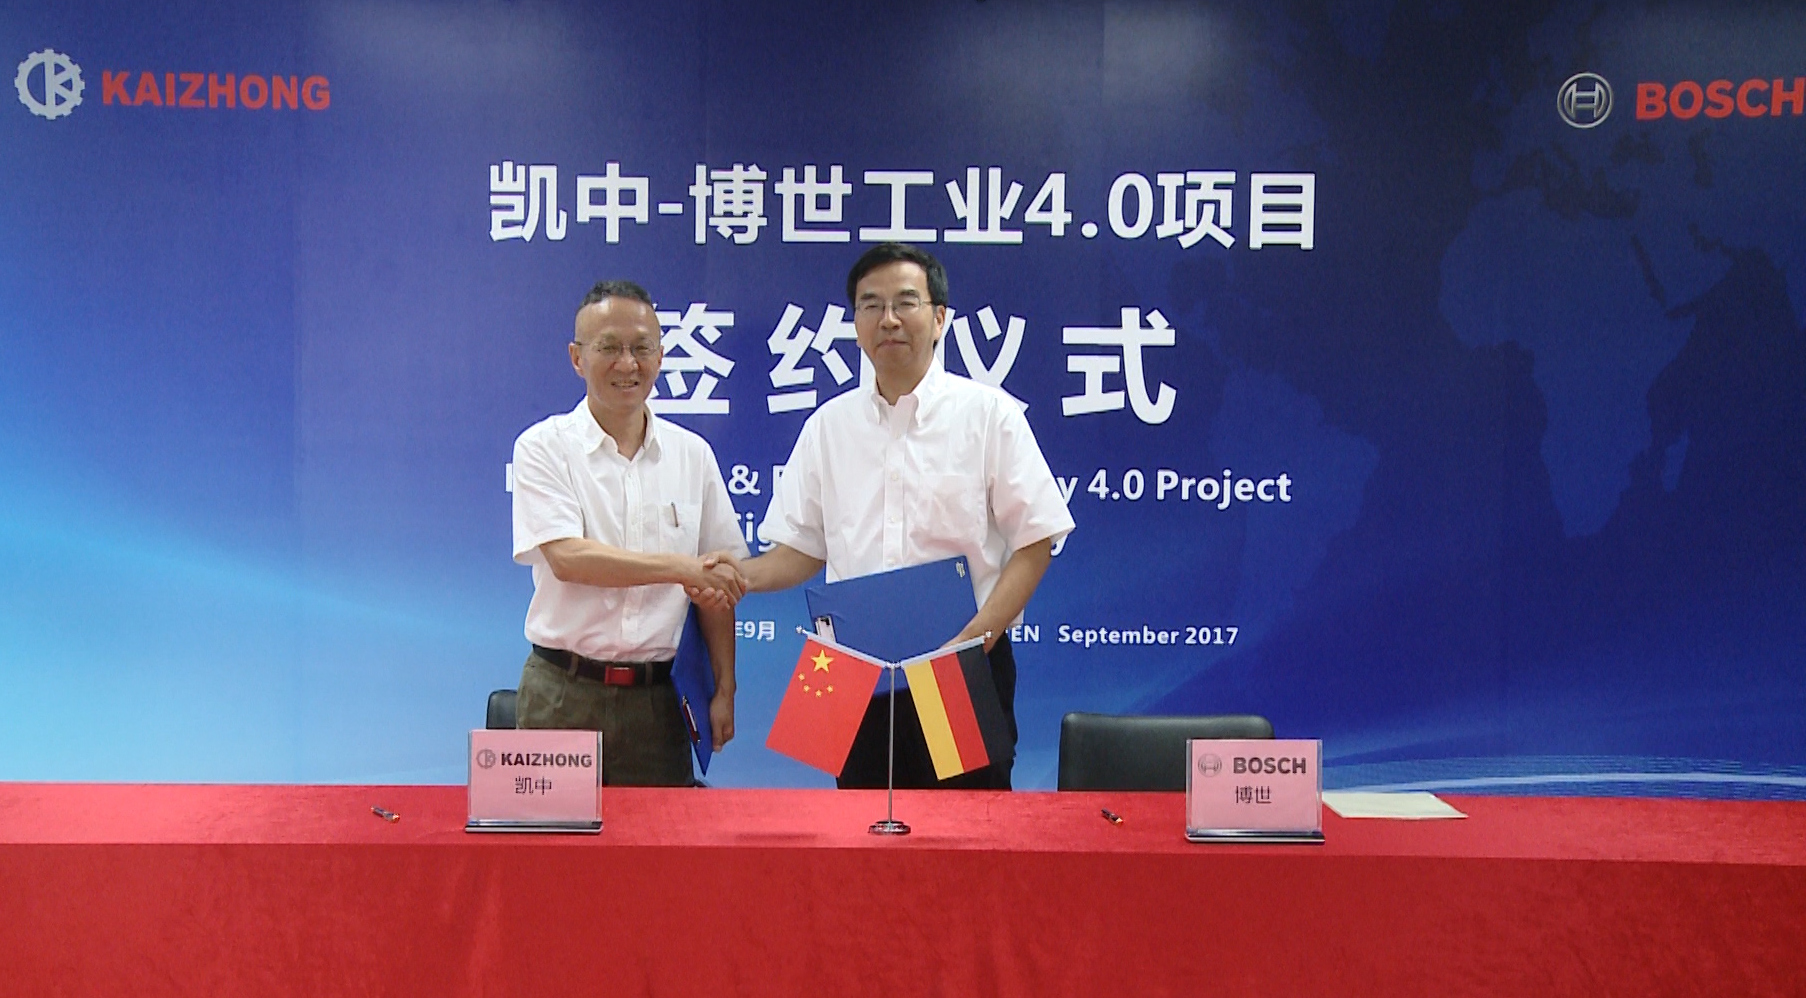 4.0 All-Round Cooperation between BOSCH and Kaizhong Precision